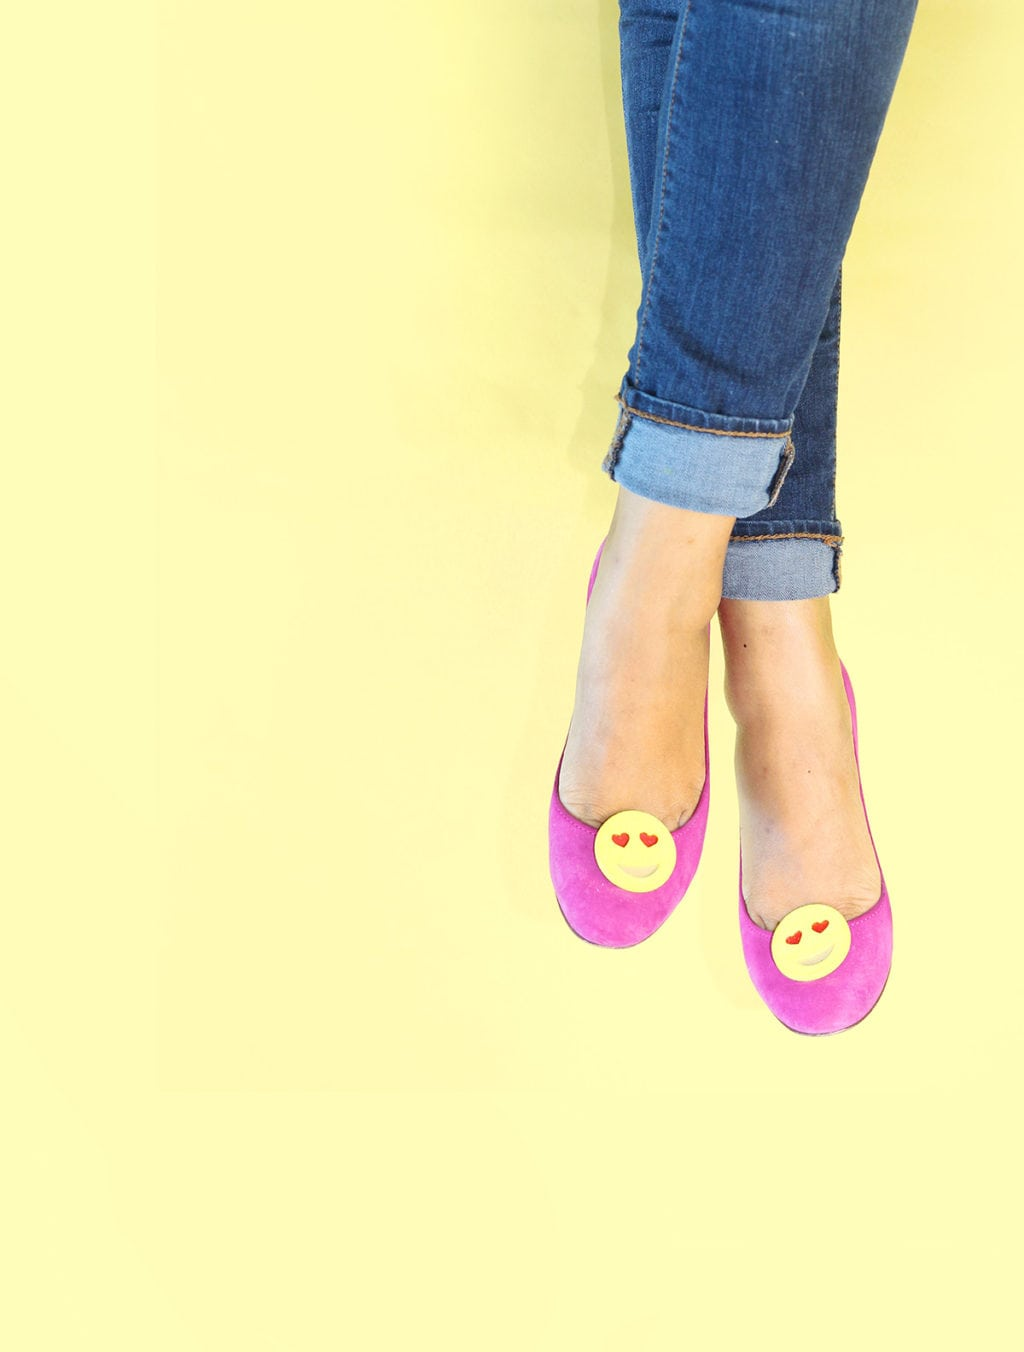 DIY Emoji Shoe Clips | damask love